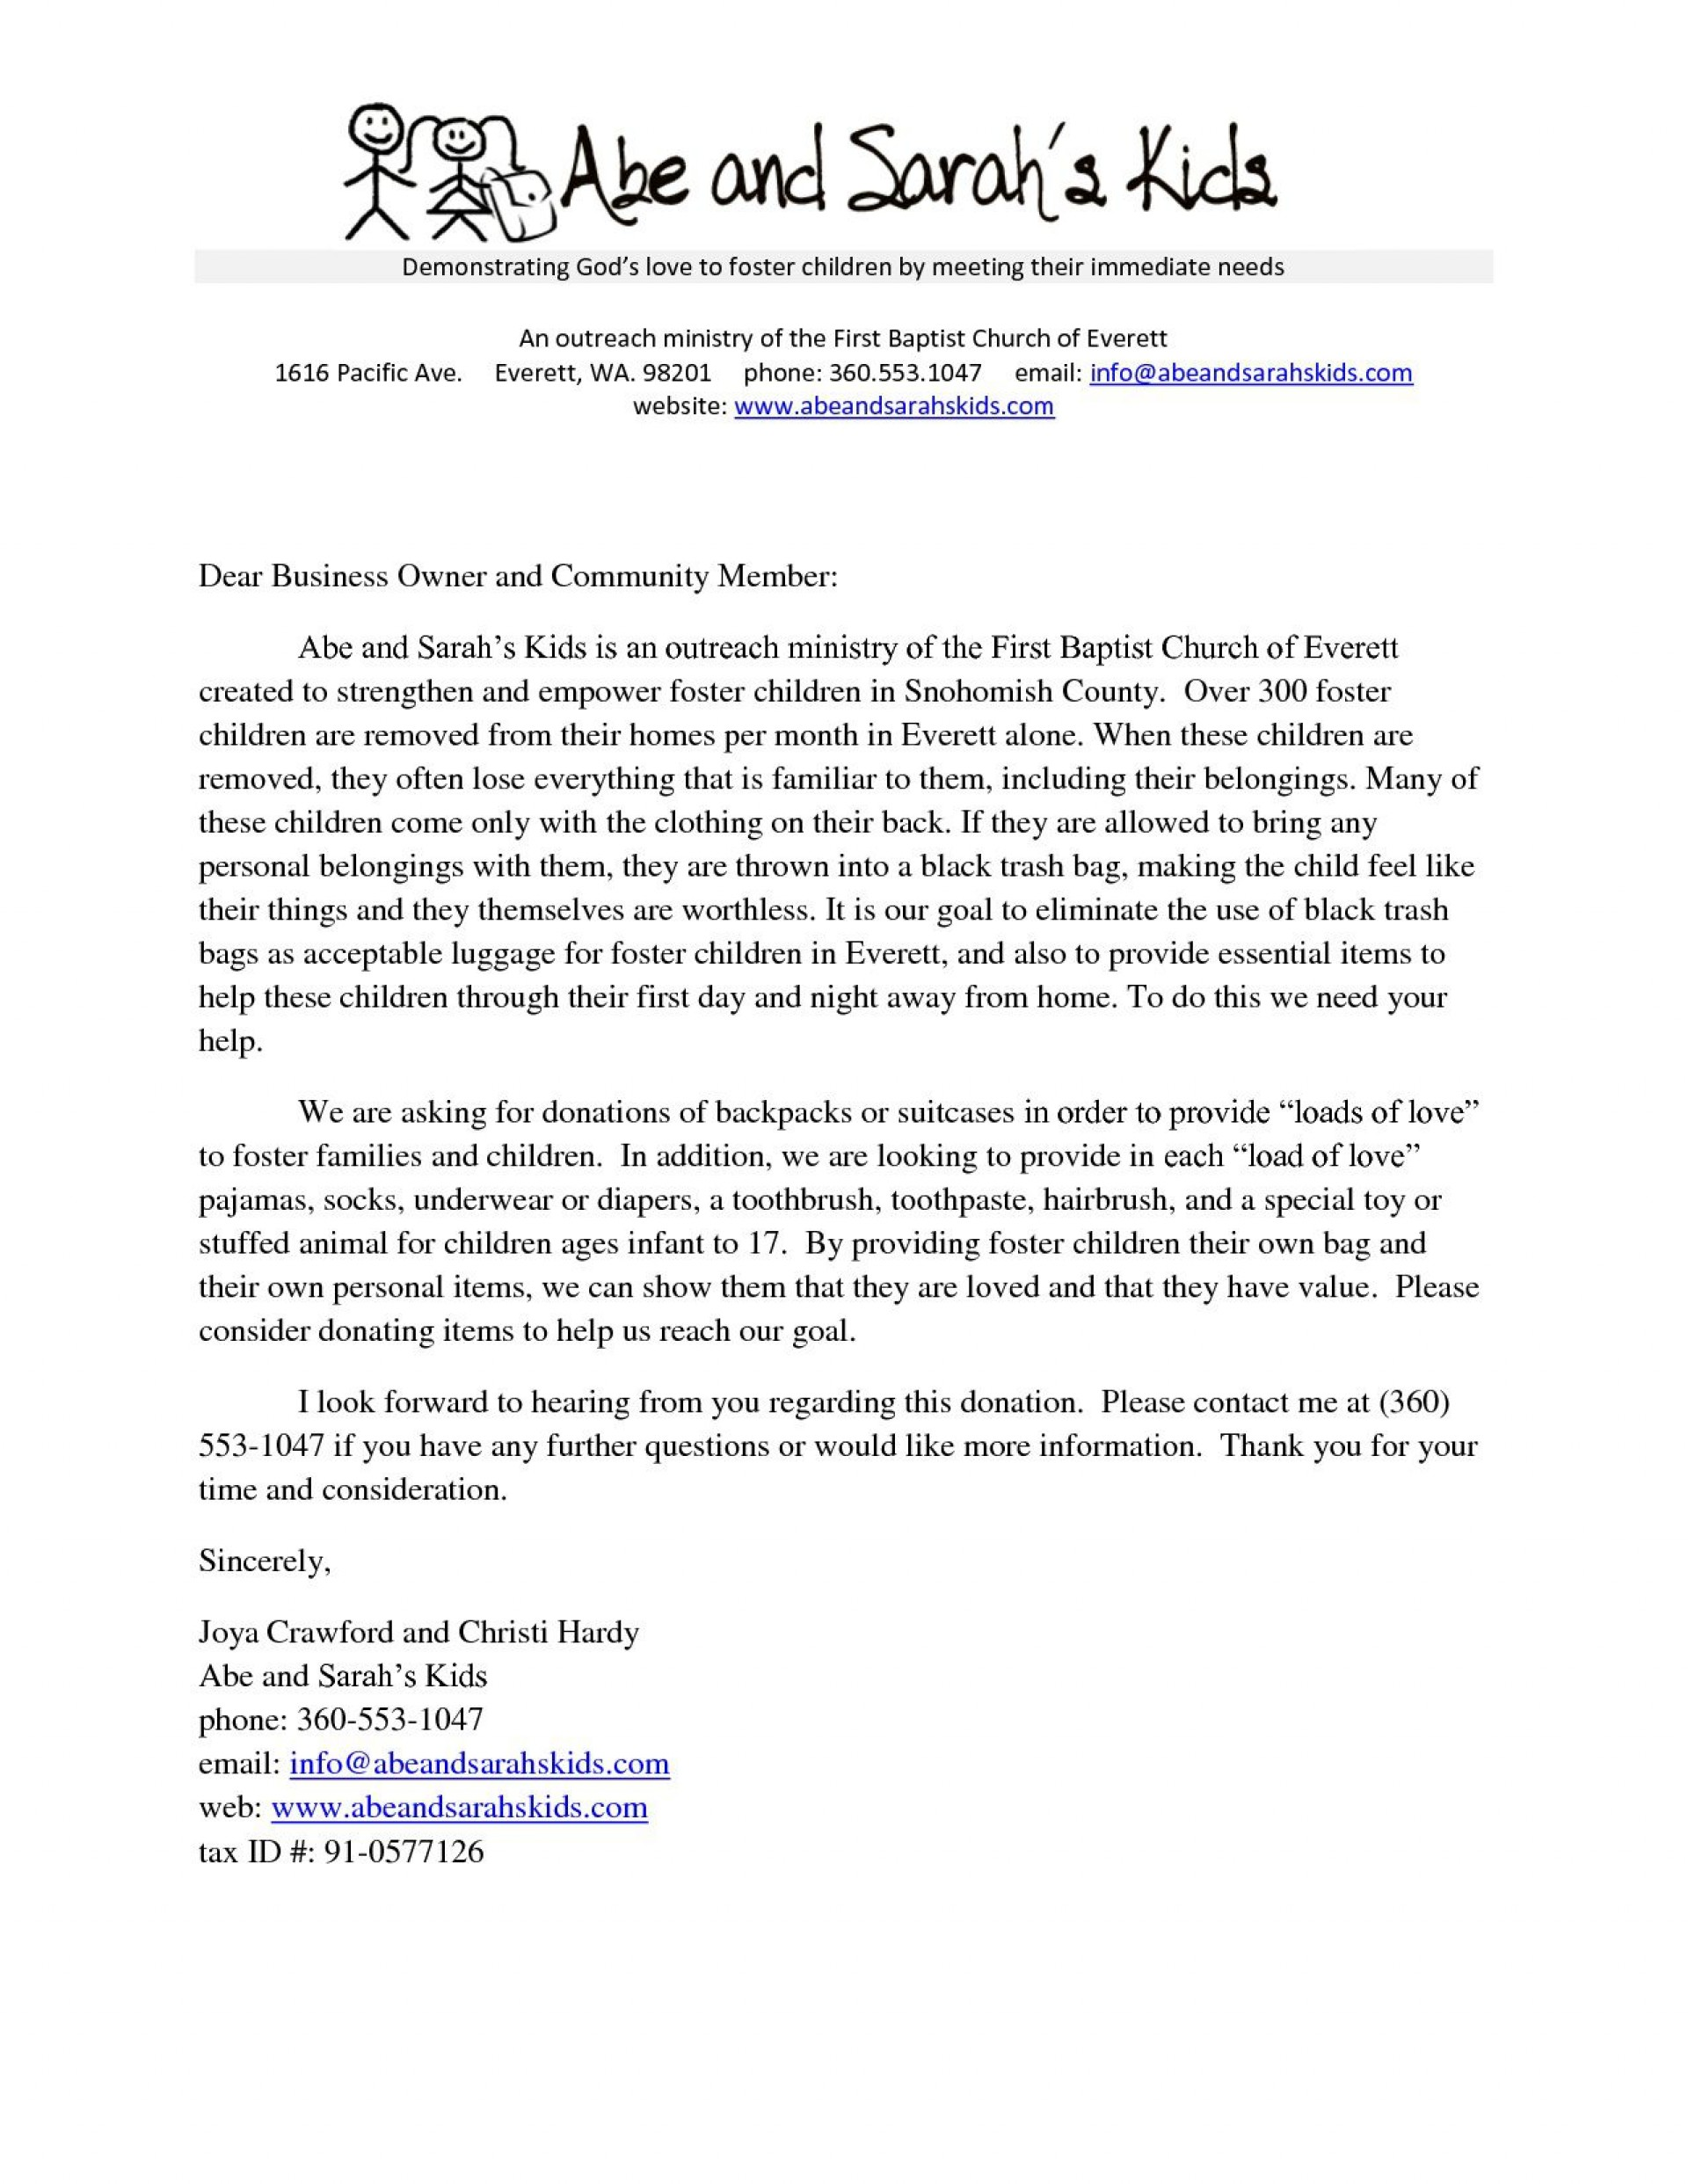 002 Stunning Fund Raising Letter Template Design  Templates Example Of Fundraising Appeal For Mission Trip Uk1920